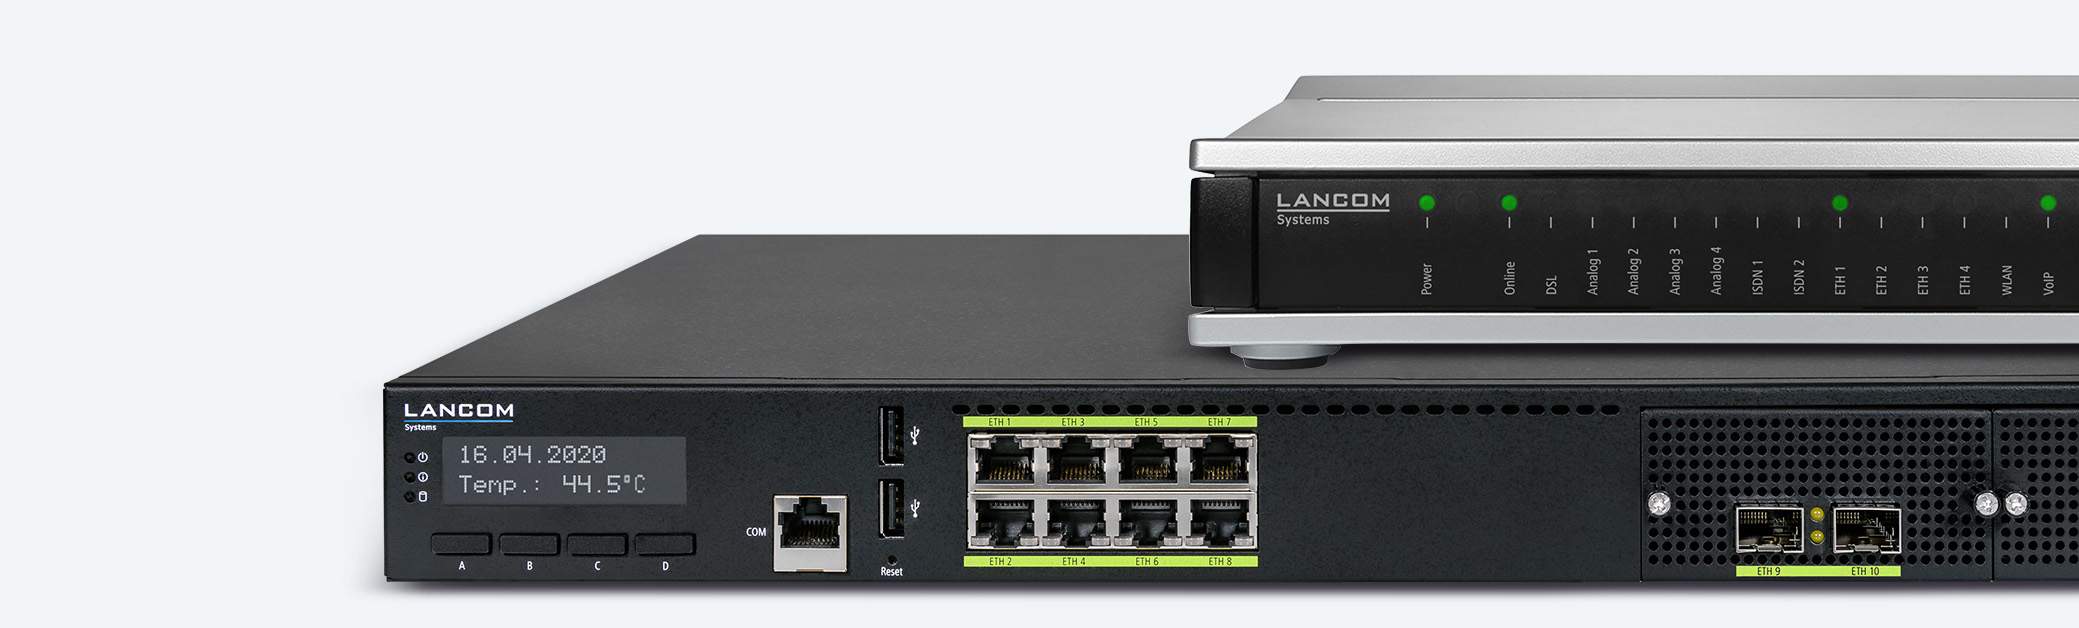 Collage of LANCOM routers and SD-WAN products